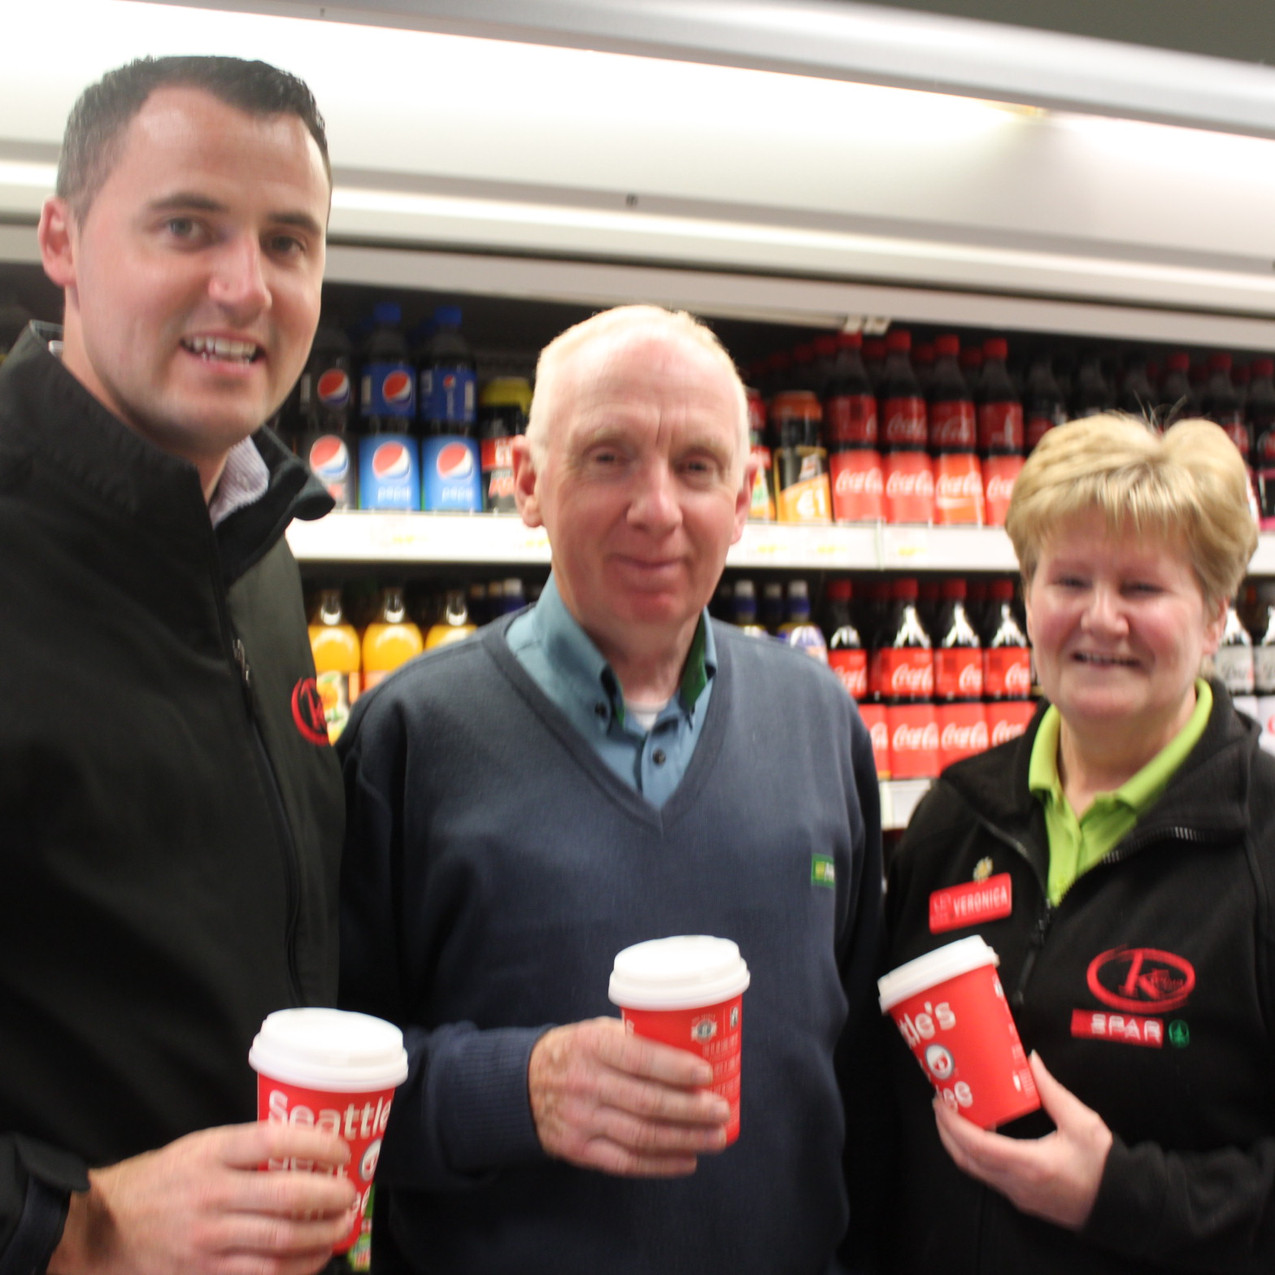 Kernans Ramelton. Manager Pauric Mc Garvery pictured with Veronica Logan and Postman James Boyce